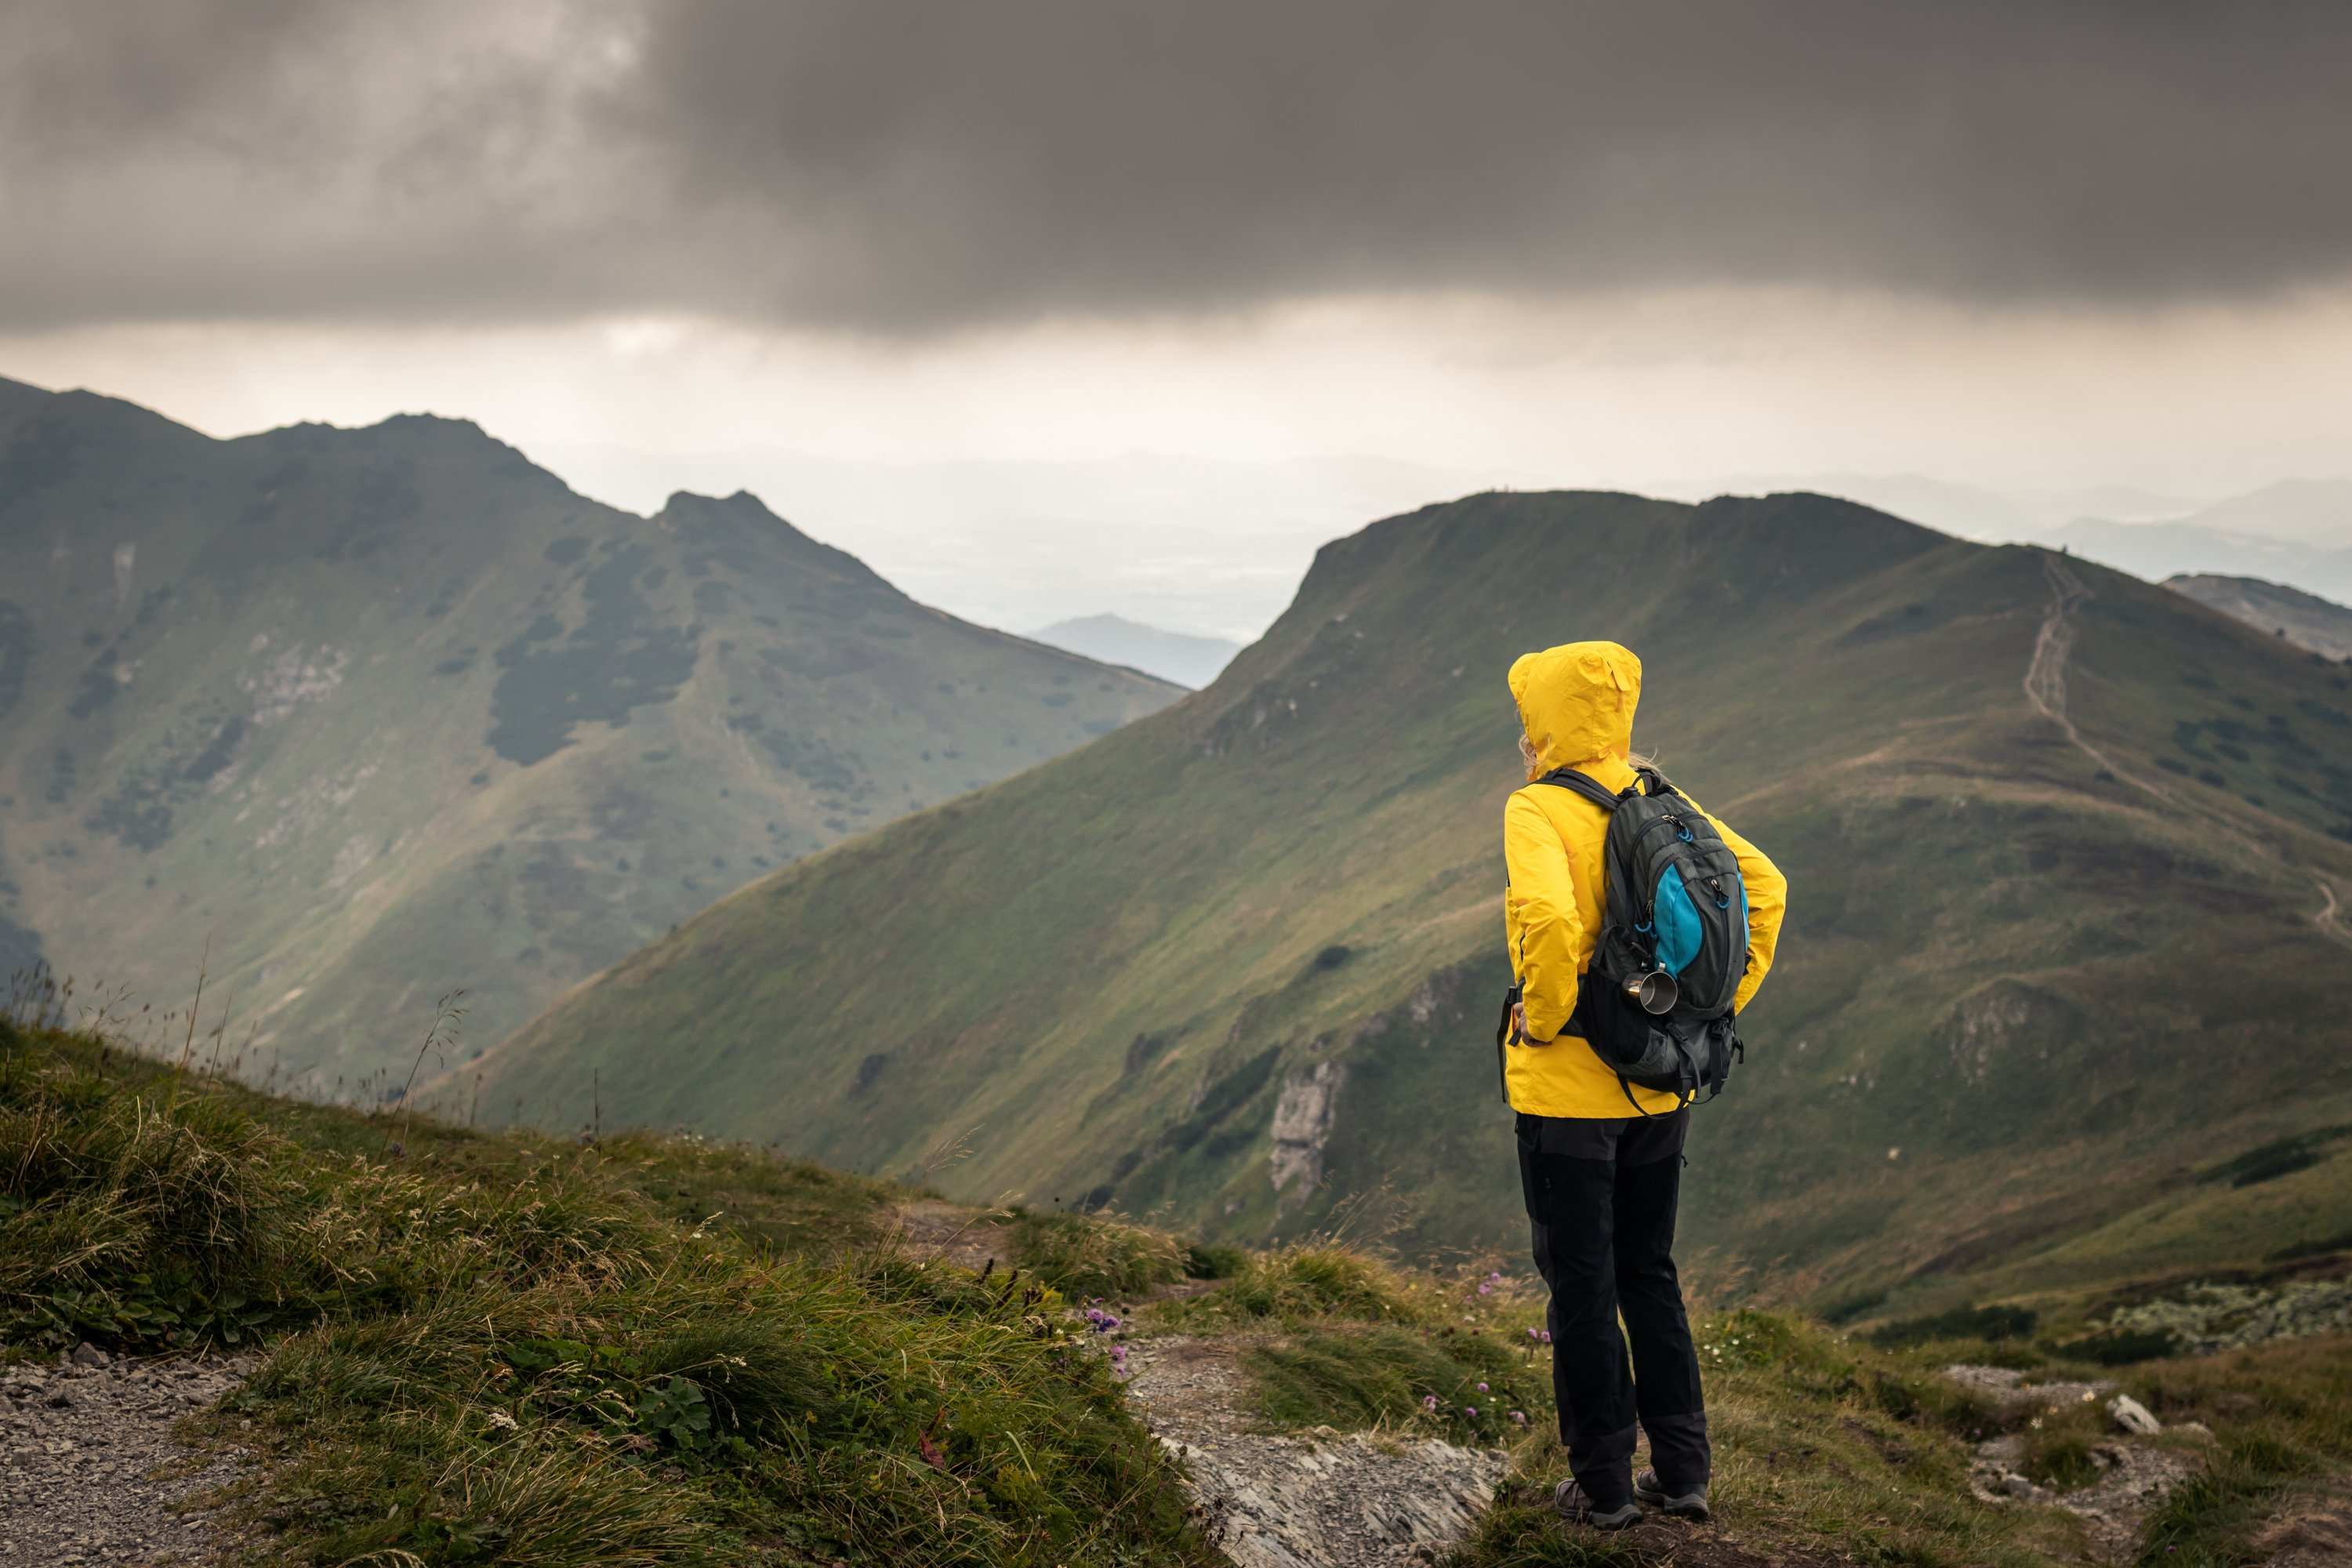 If you are hiking and get caught in bad weather, you should under no circumstances stay at the edge of the forest, near free-standing boulders or under free-standing trees. (Shutterstock Photo)